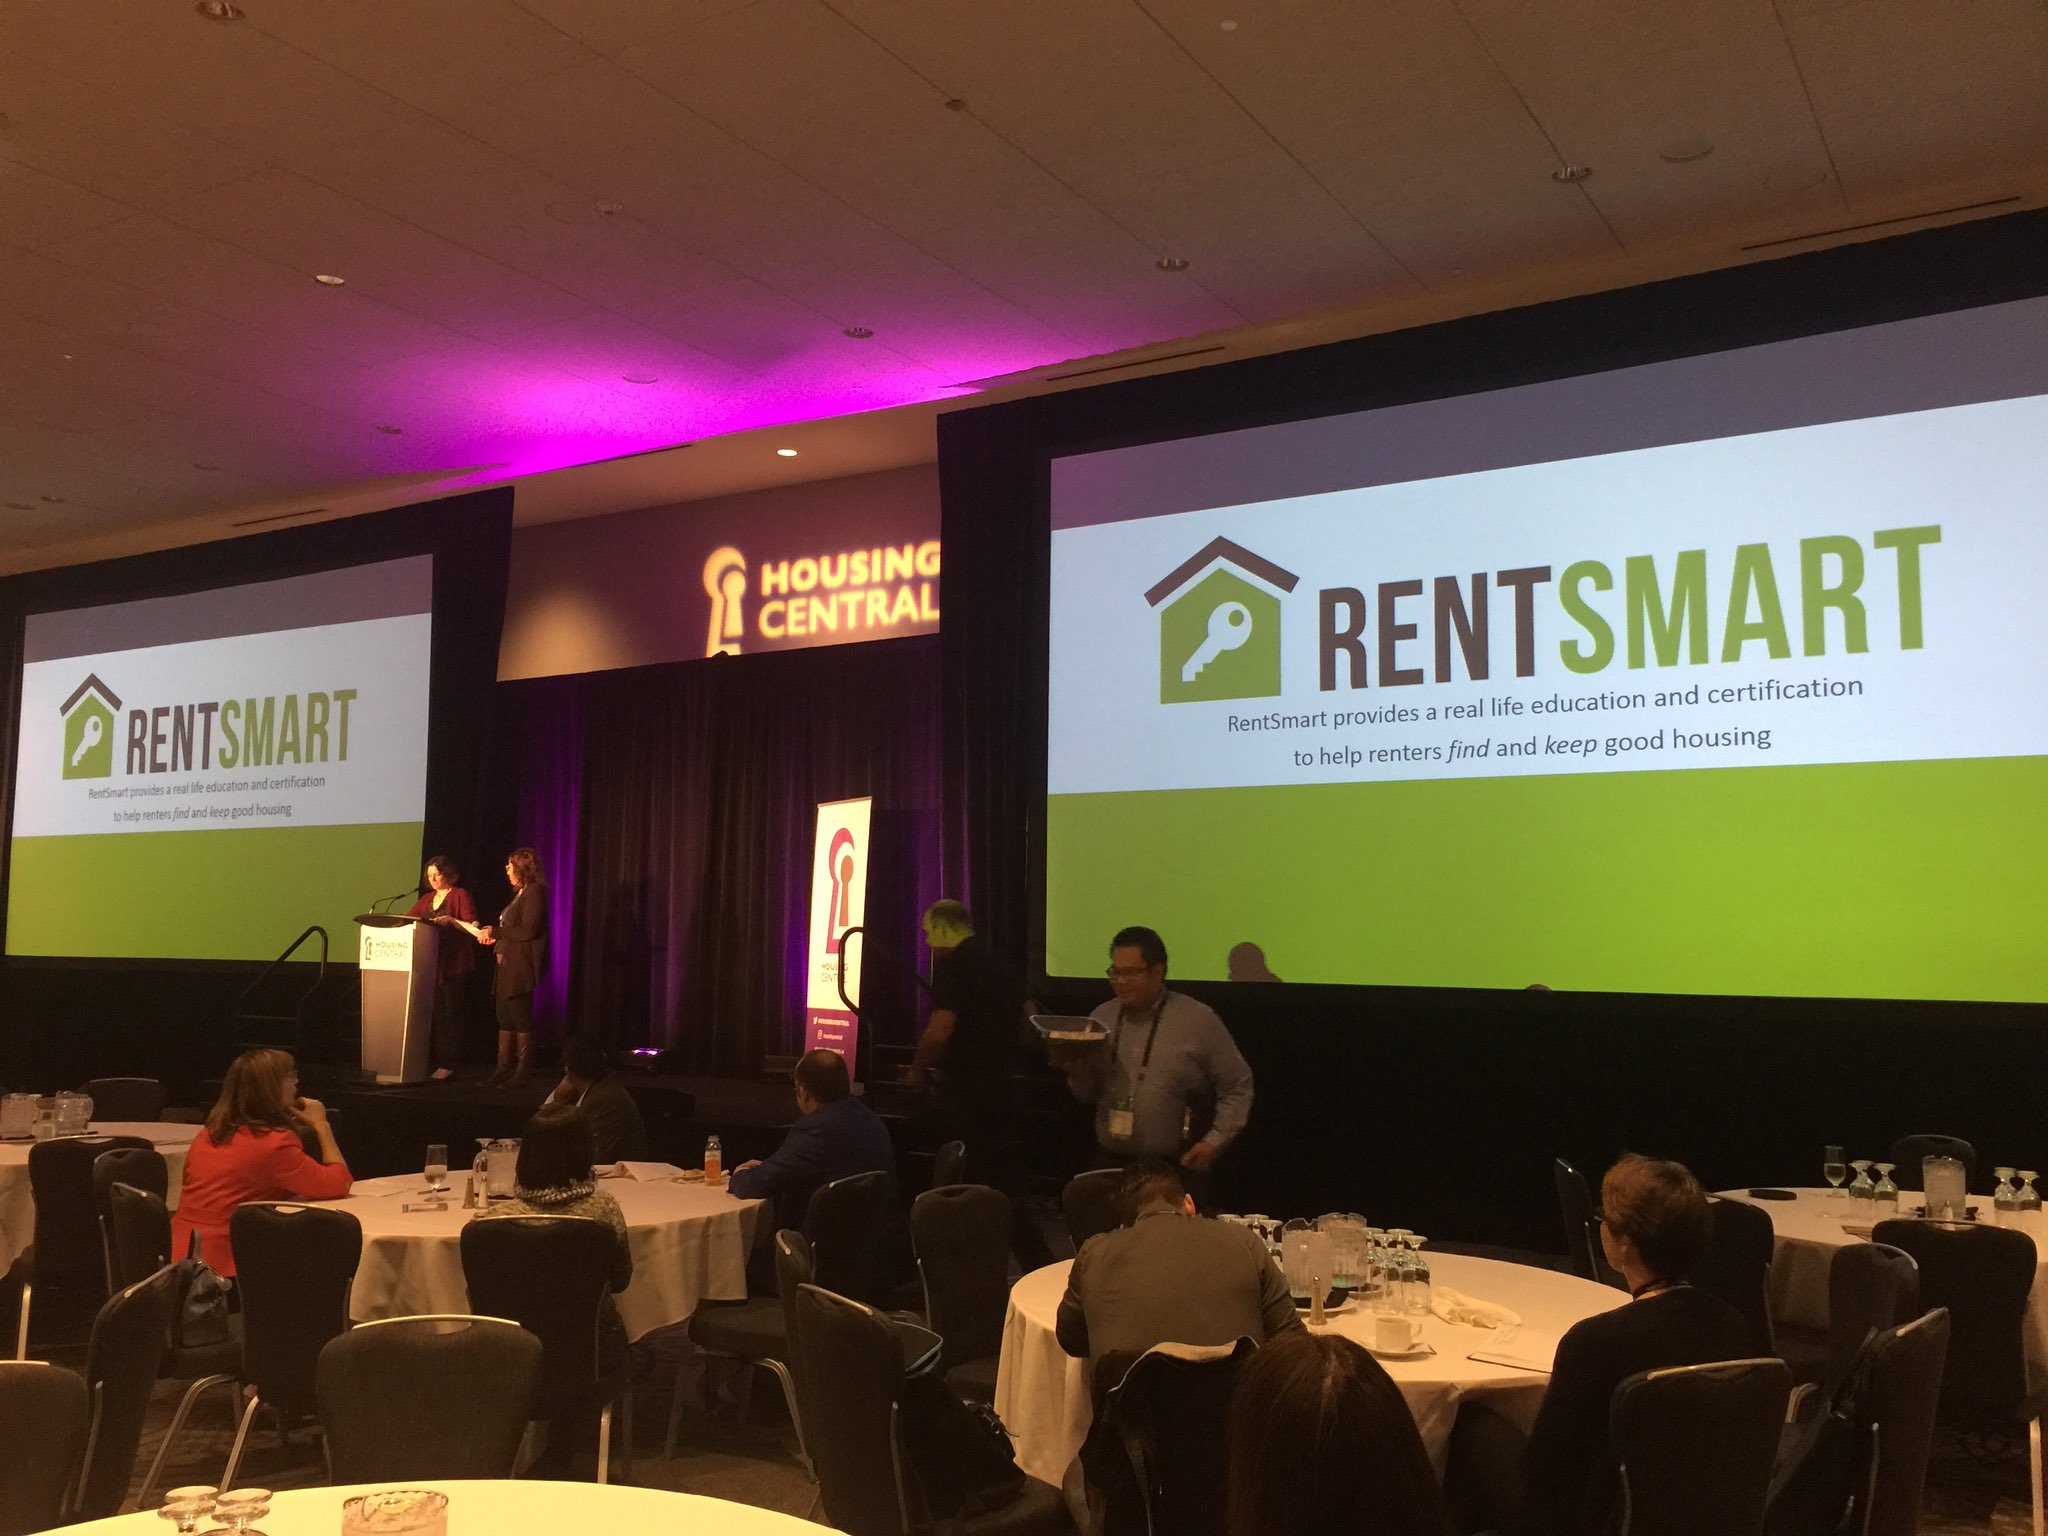 Ready to Rent presenting @BCNPHA #HousingCentral. @EdmontonCRHC proud to partner in AB. #itstartswithhome https://t.co/f7lsfsniQx